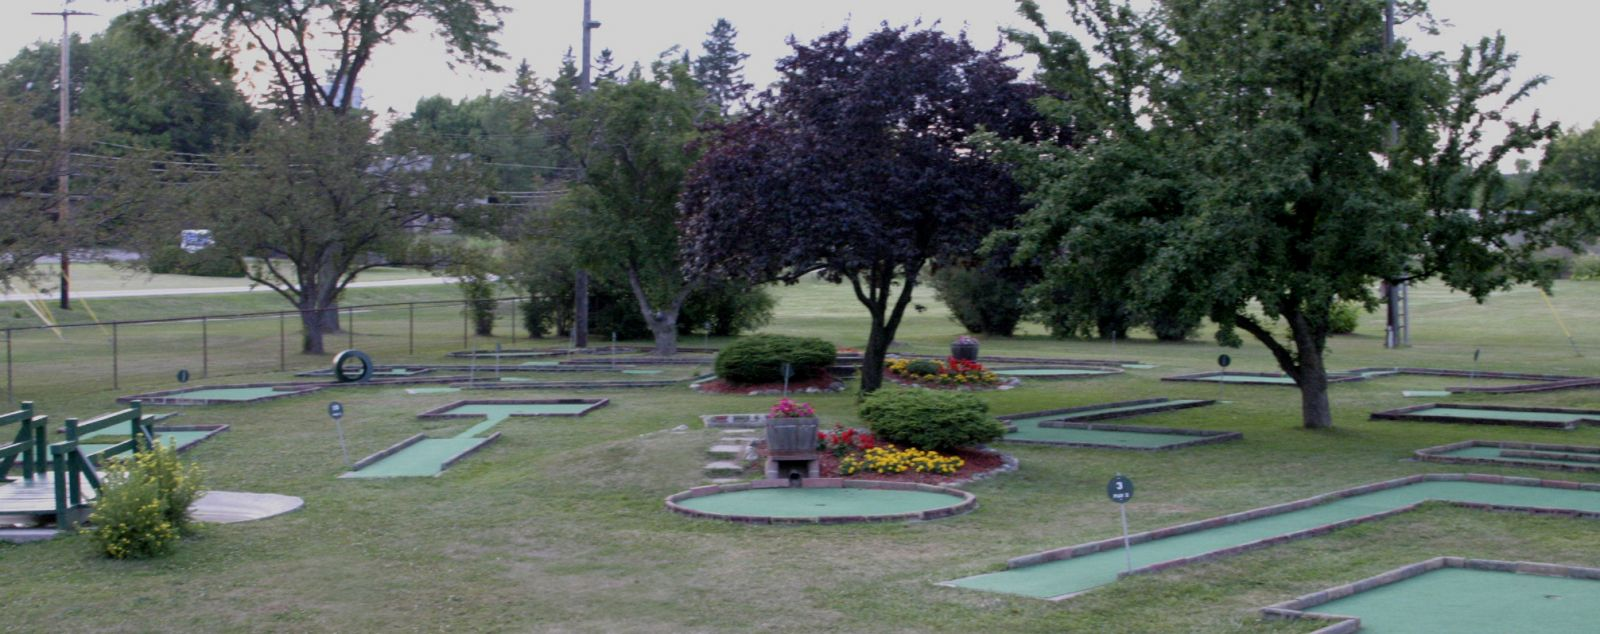 baehmanns-golf-center-mini-golf